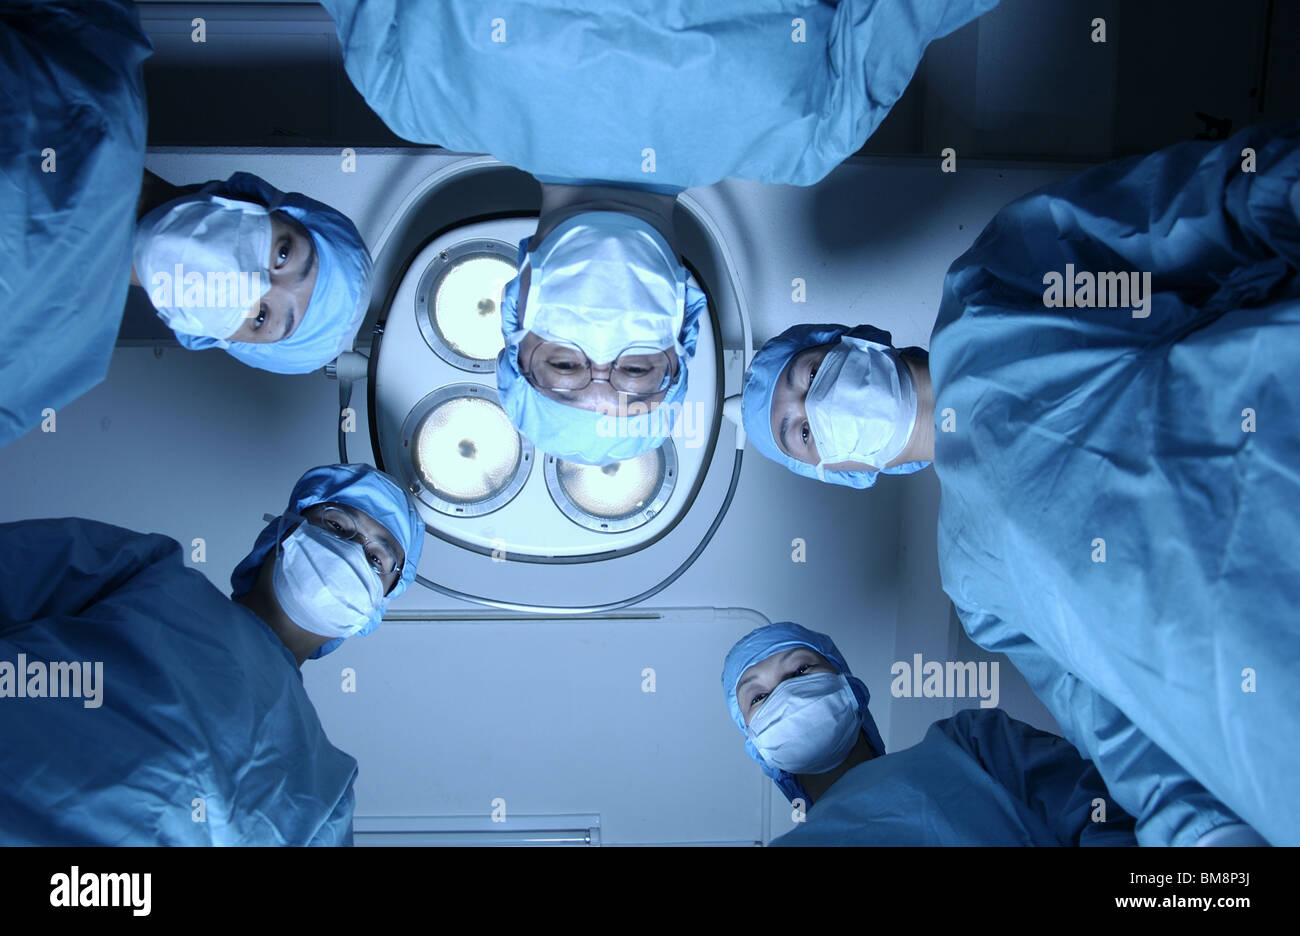 Five surgeons from operating table Stock Photo